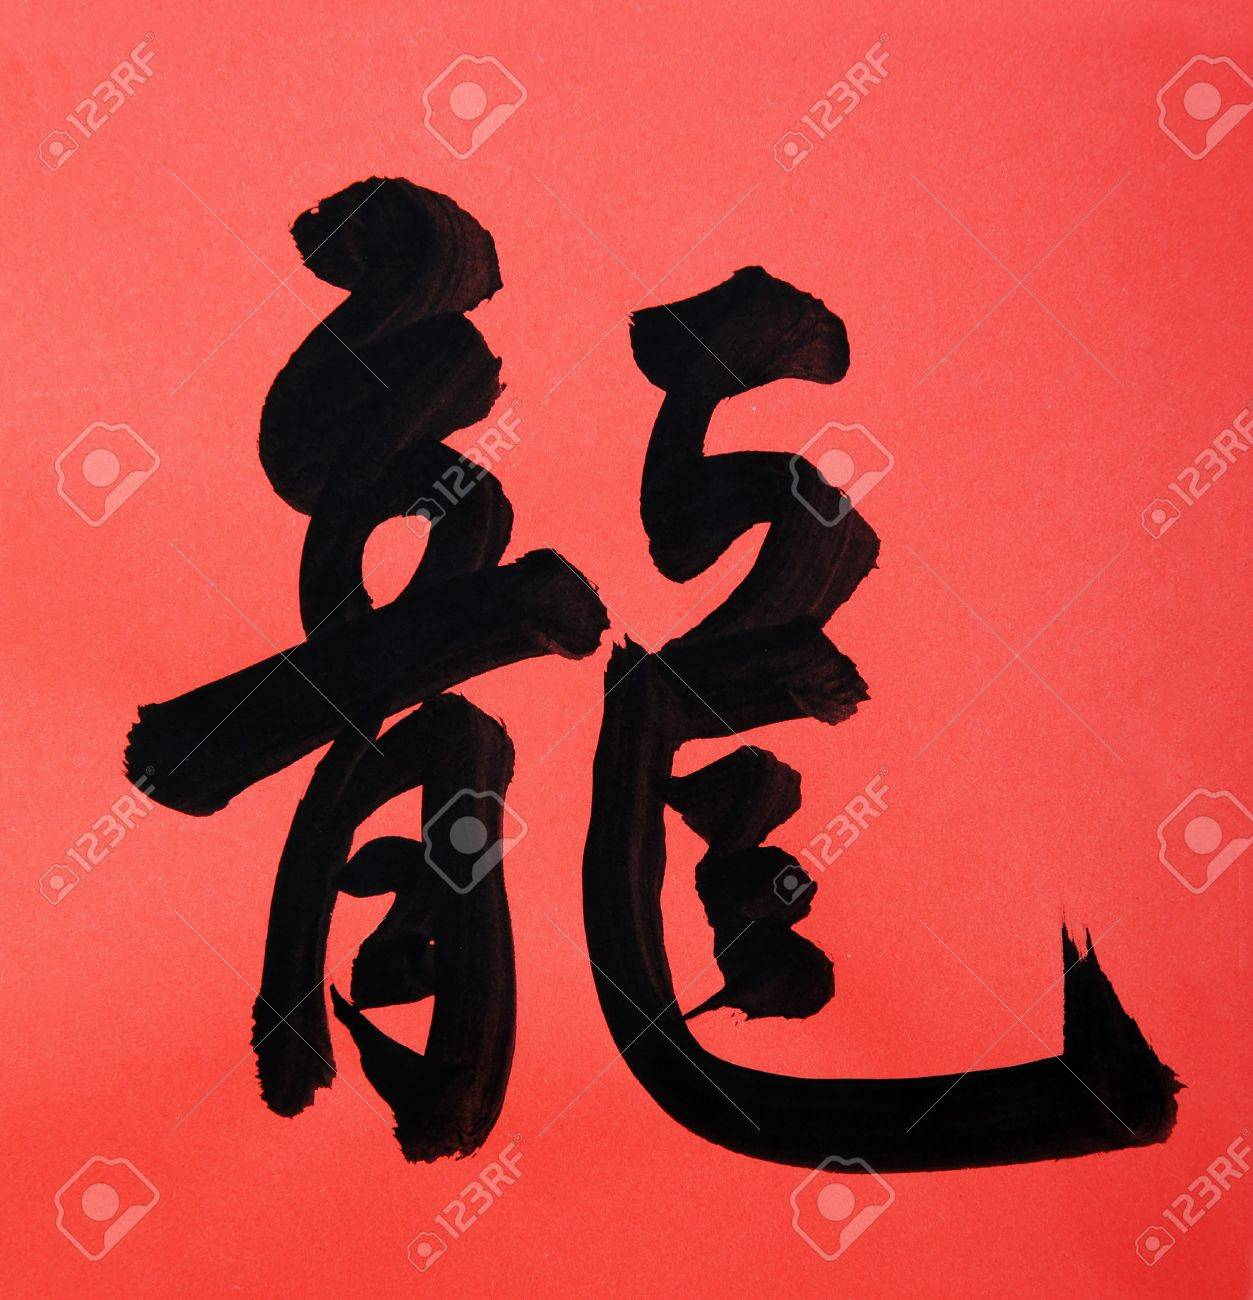 chinese new year design Stock Photo - 11976179